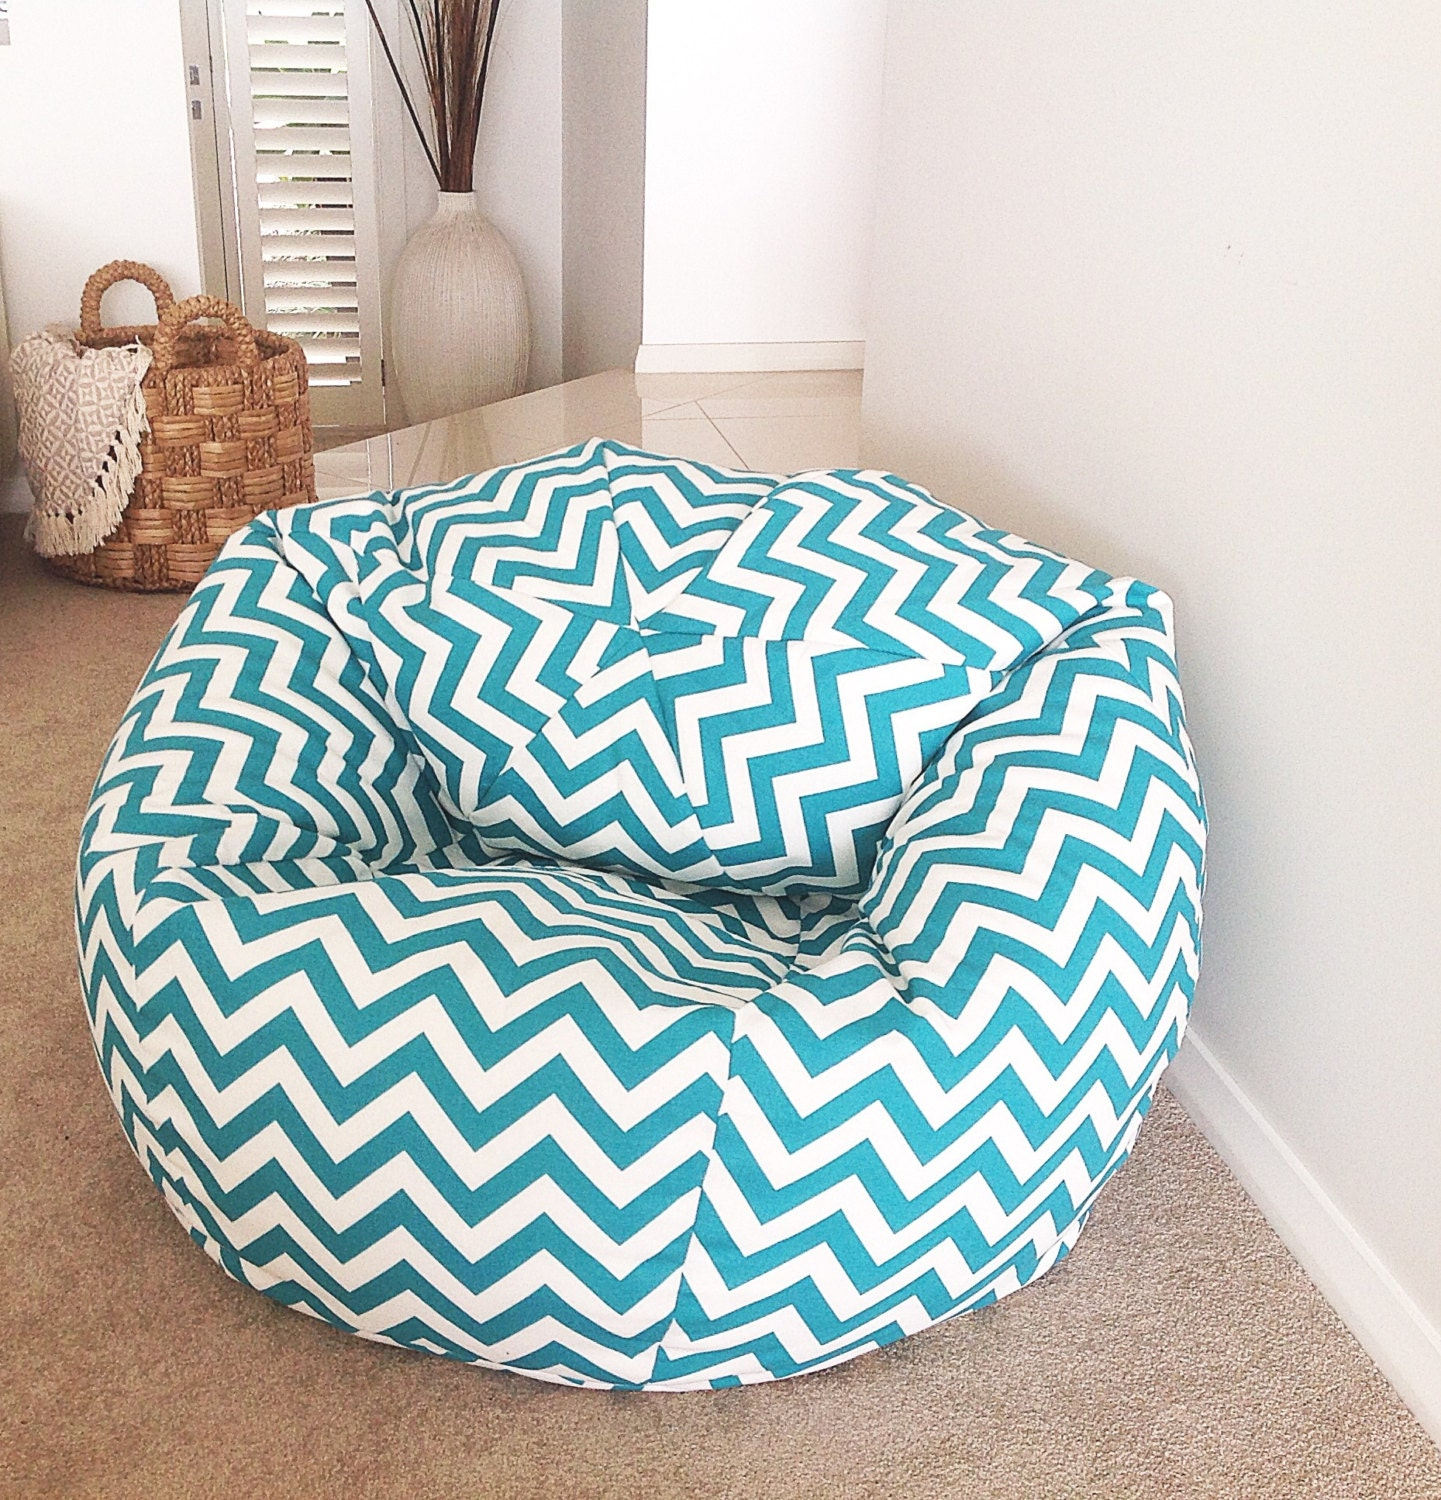 Bean bag chairs for teenage girls -